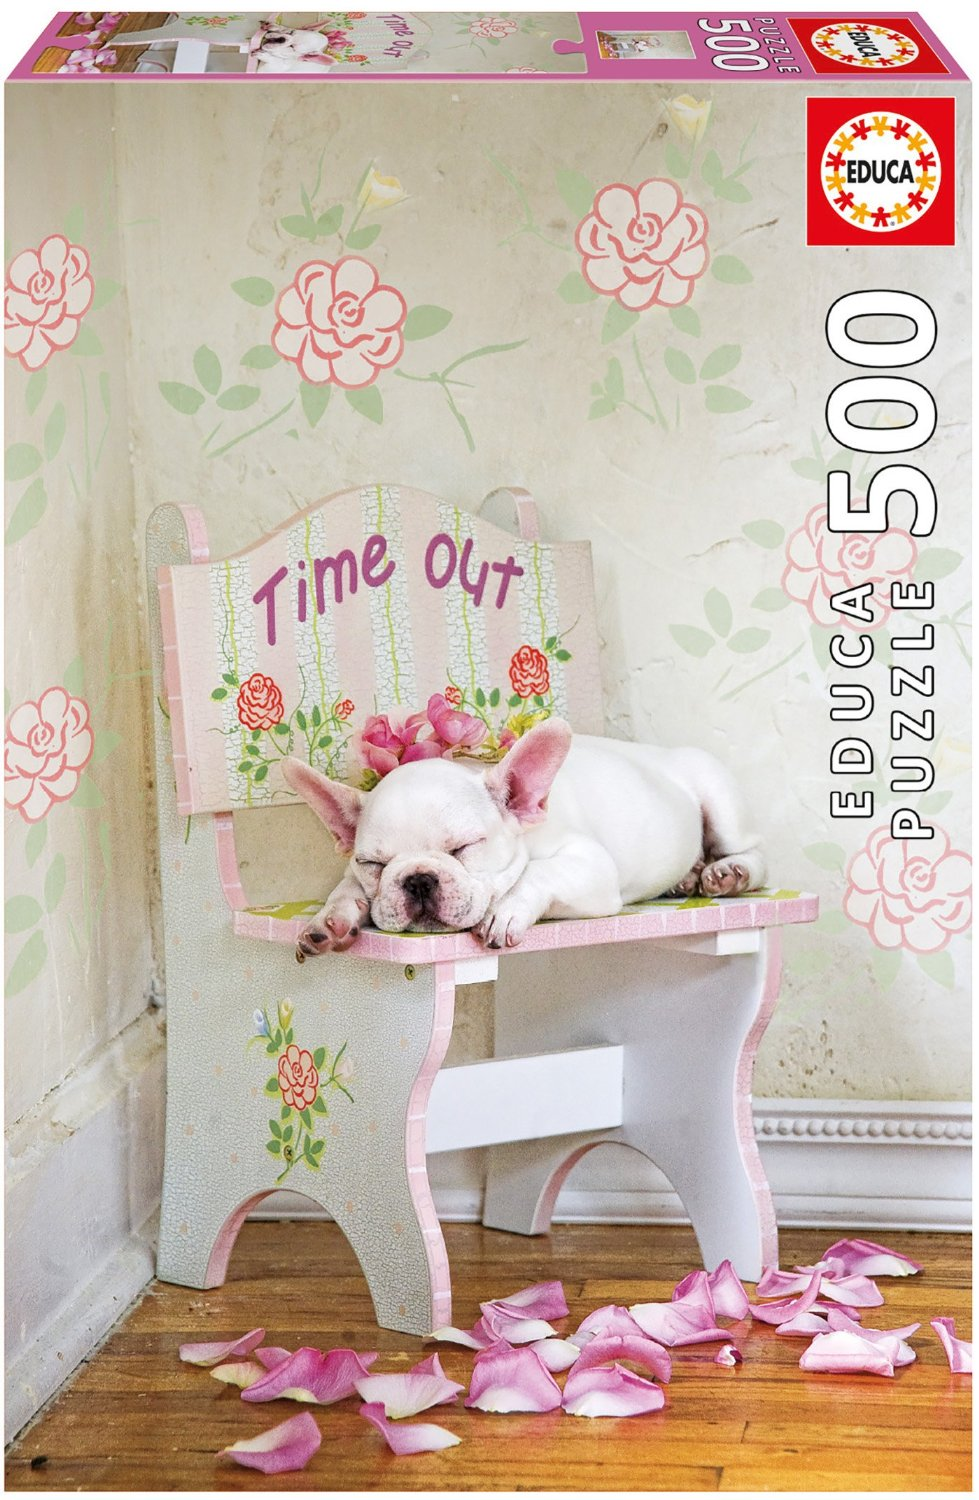 lisa-jane-taking-time-out